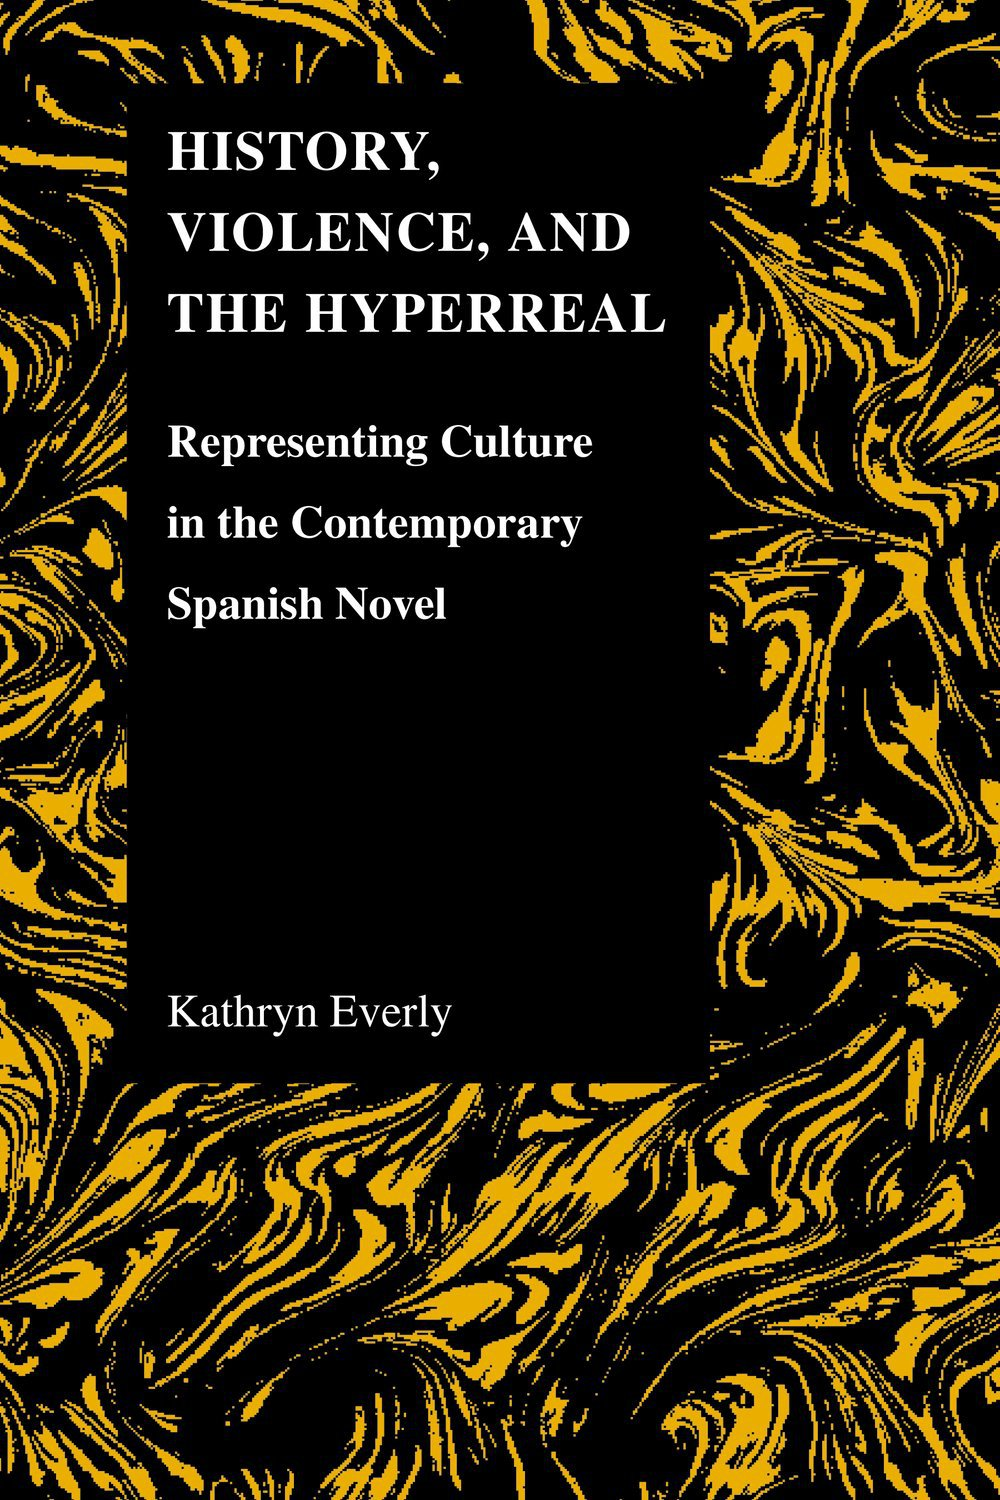 History, Violence, and the Hyperreal: Representing Culture in the Contemporary Spanish Novel